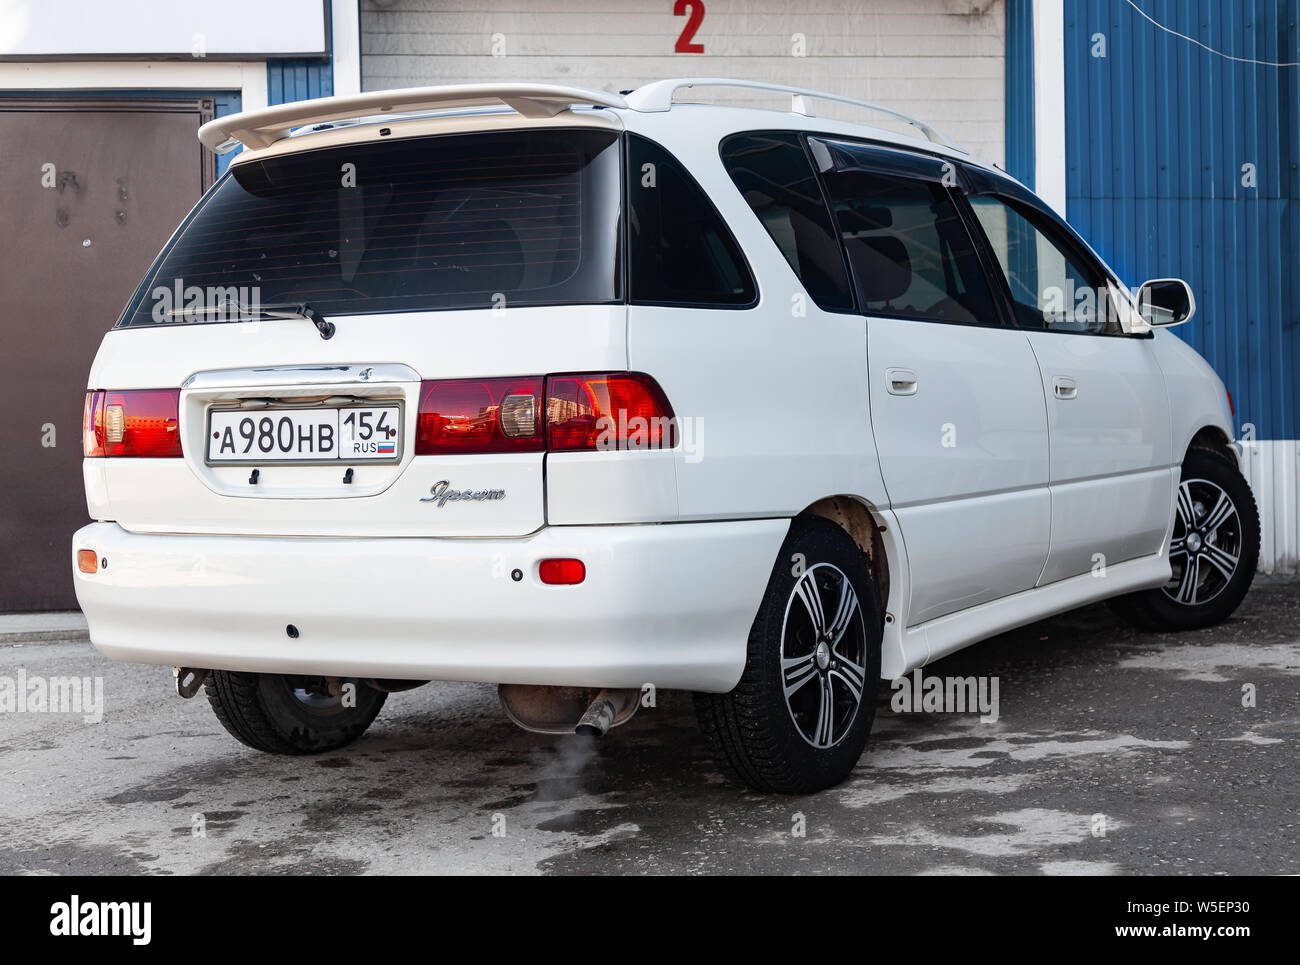 Novosibirsk, Russia - 07.25.2019: Rear view of Toyota Ipsum 1998 year in white color after cleaning before sale on parking Stock Photo